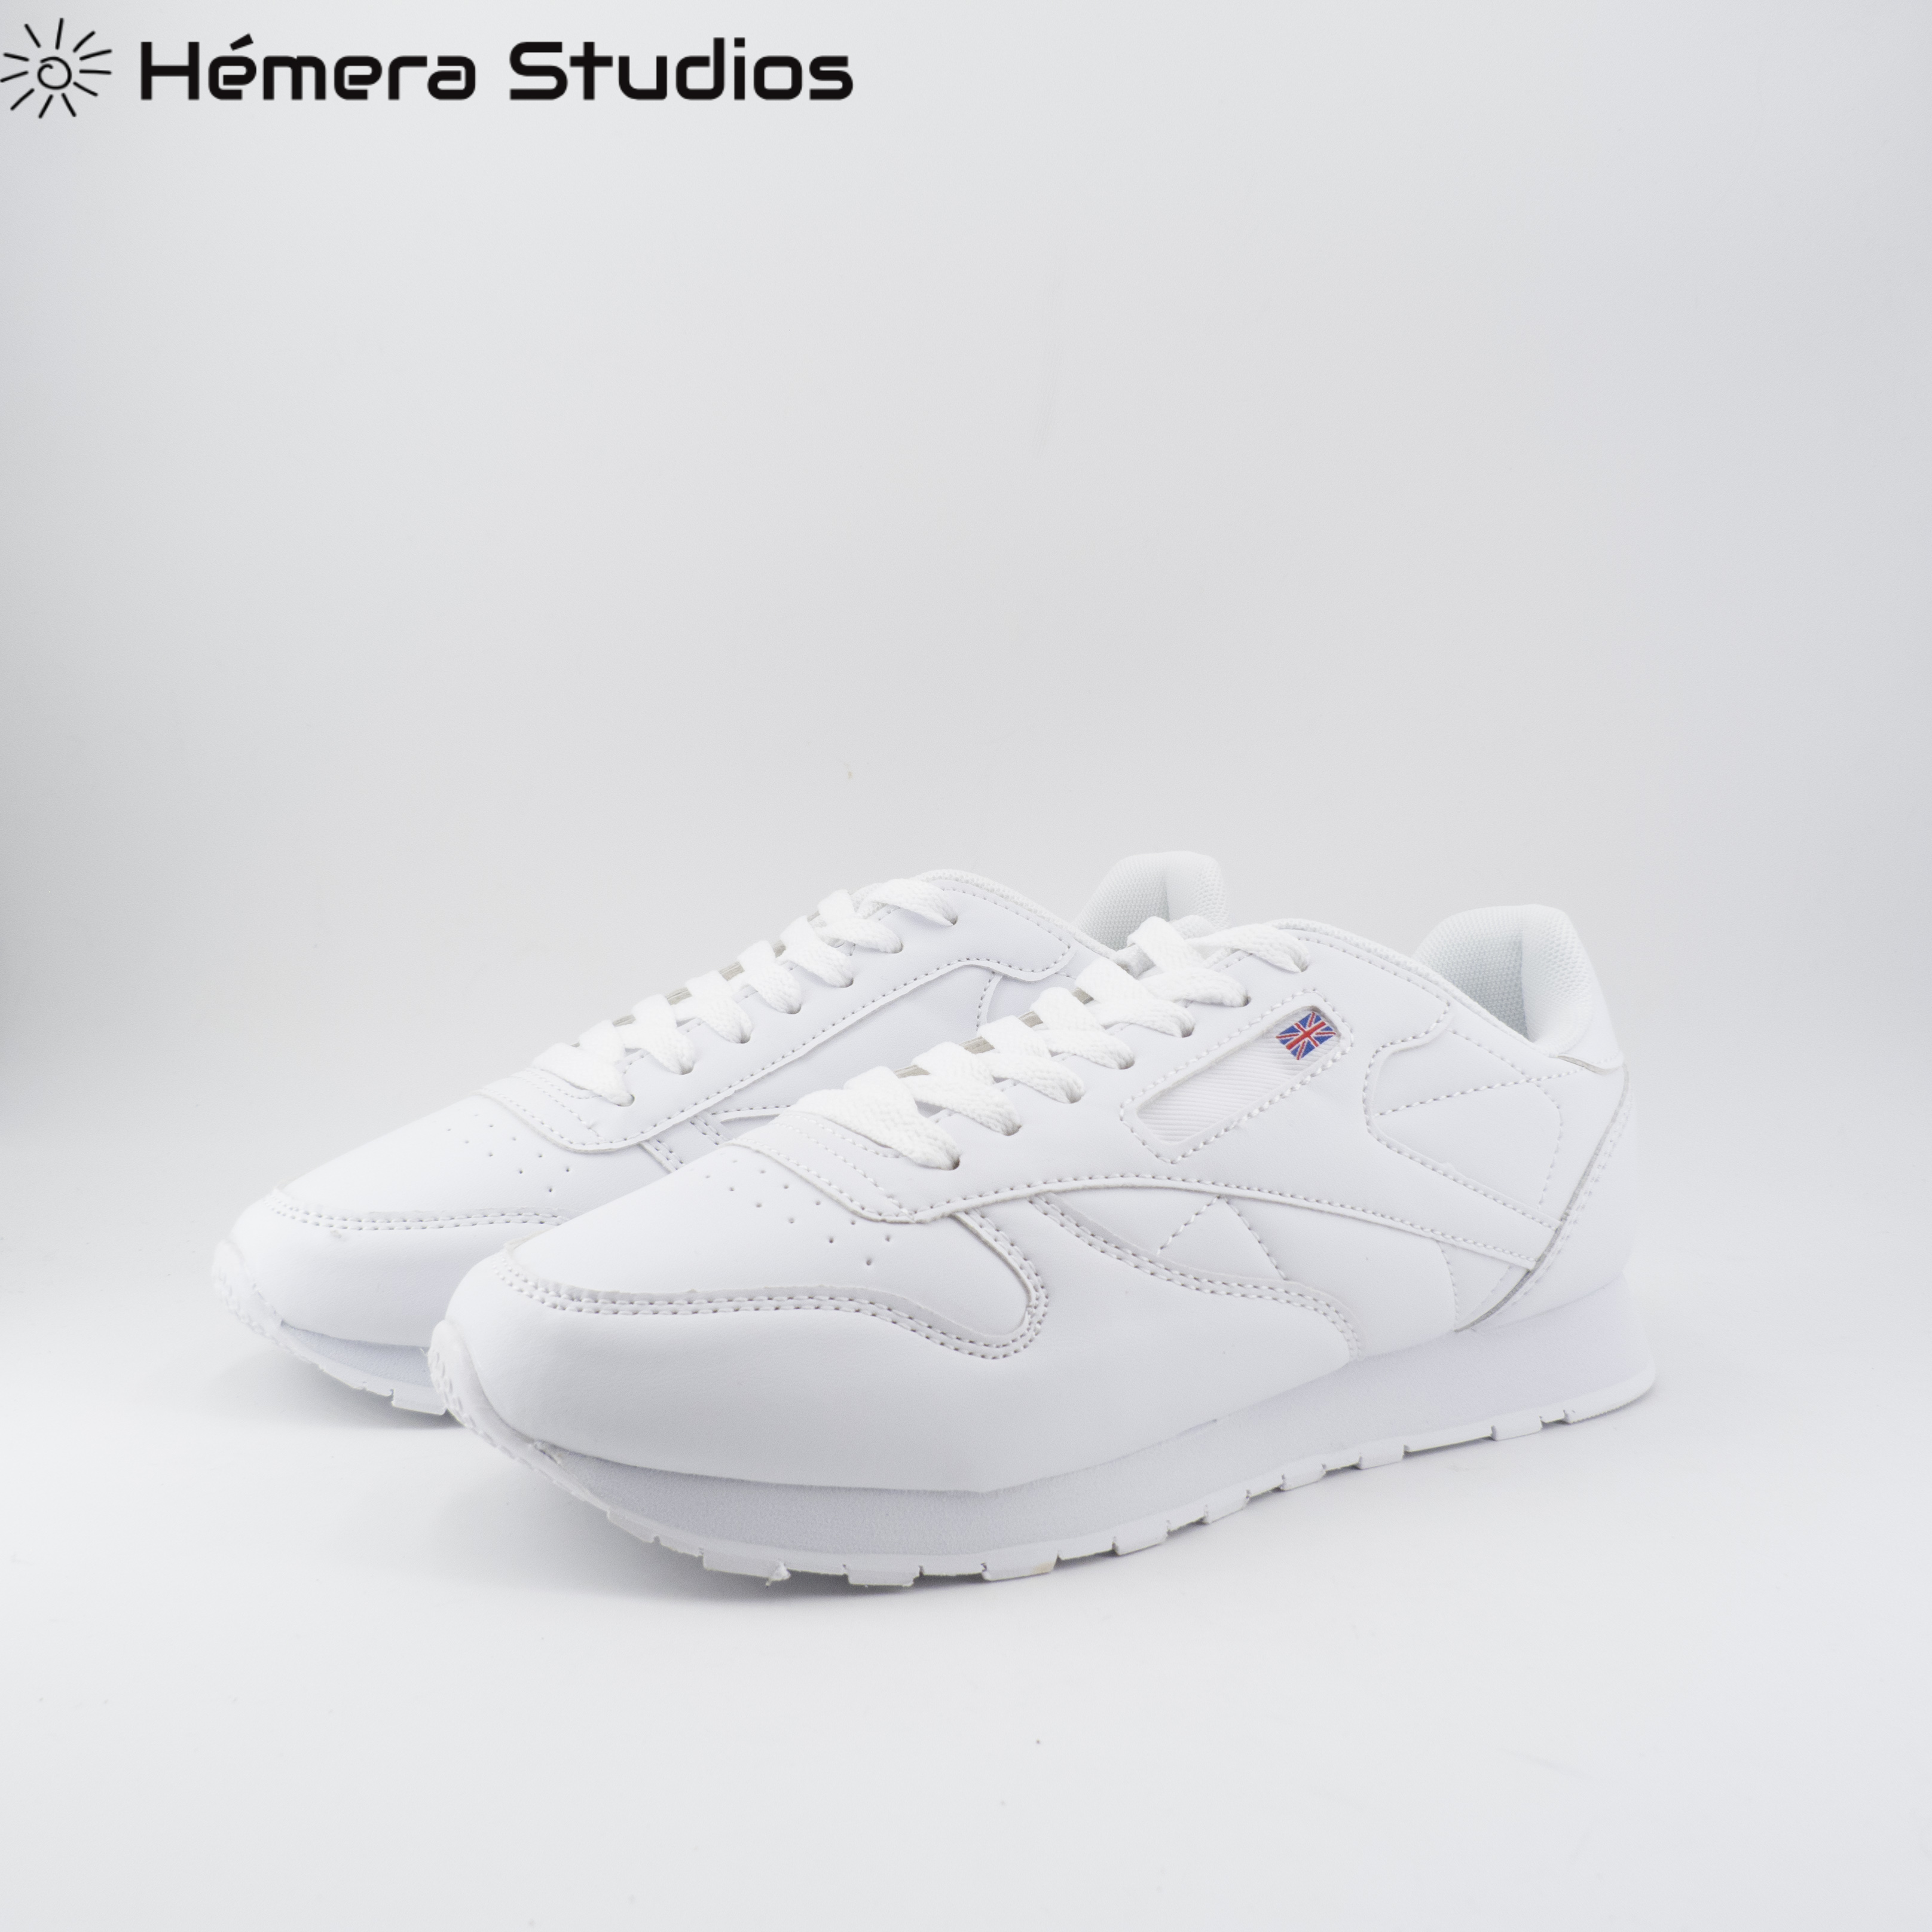 Women's Shoes Sports Casual Woman With Cords Women's Shoes In White